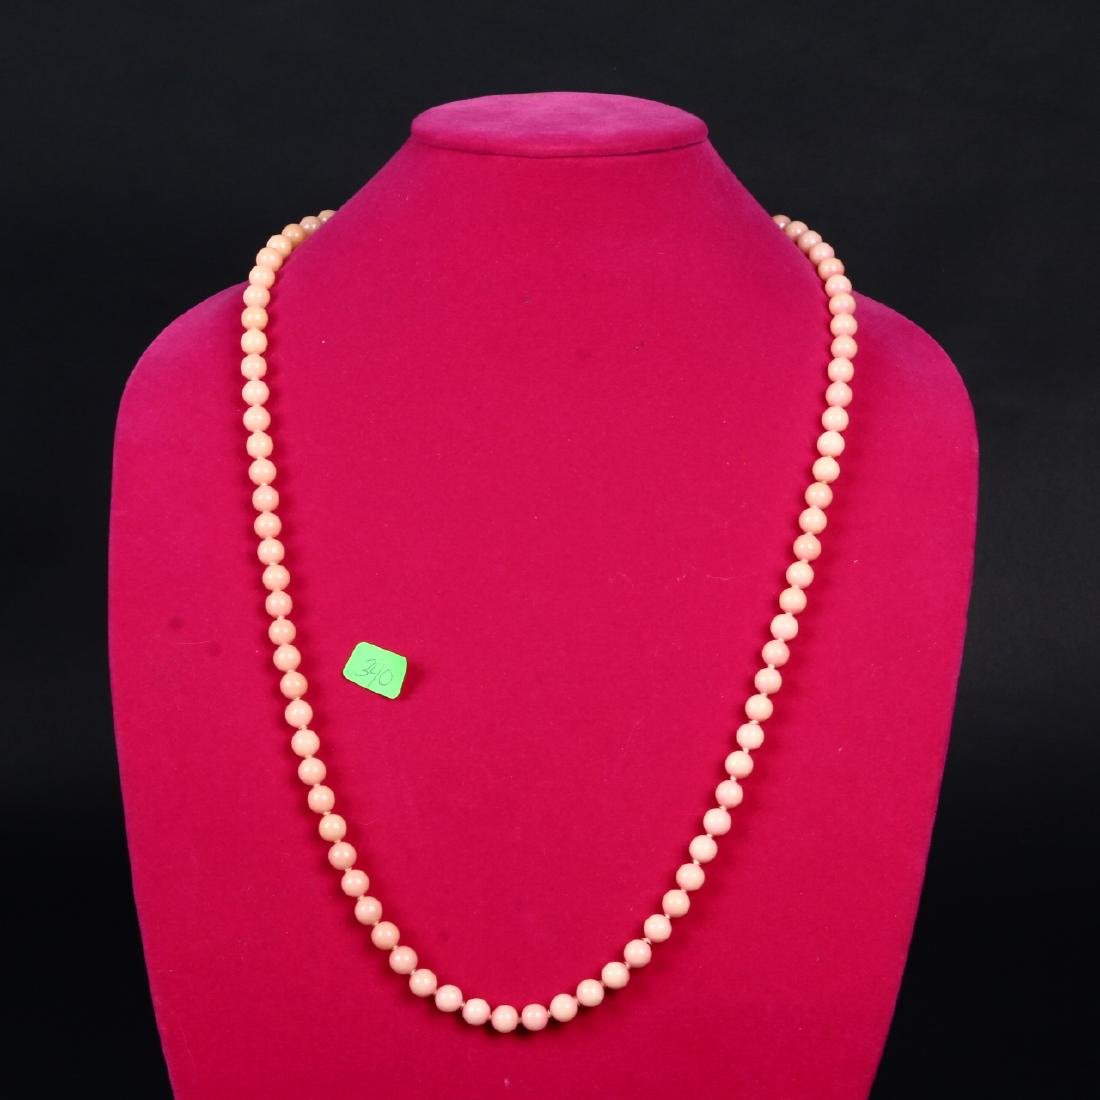 Angel Skin Coral Necklace Salmon Pink Peach Beads